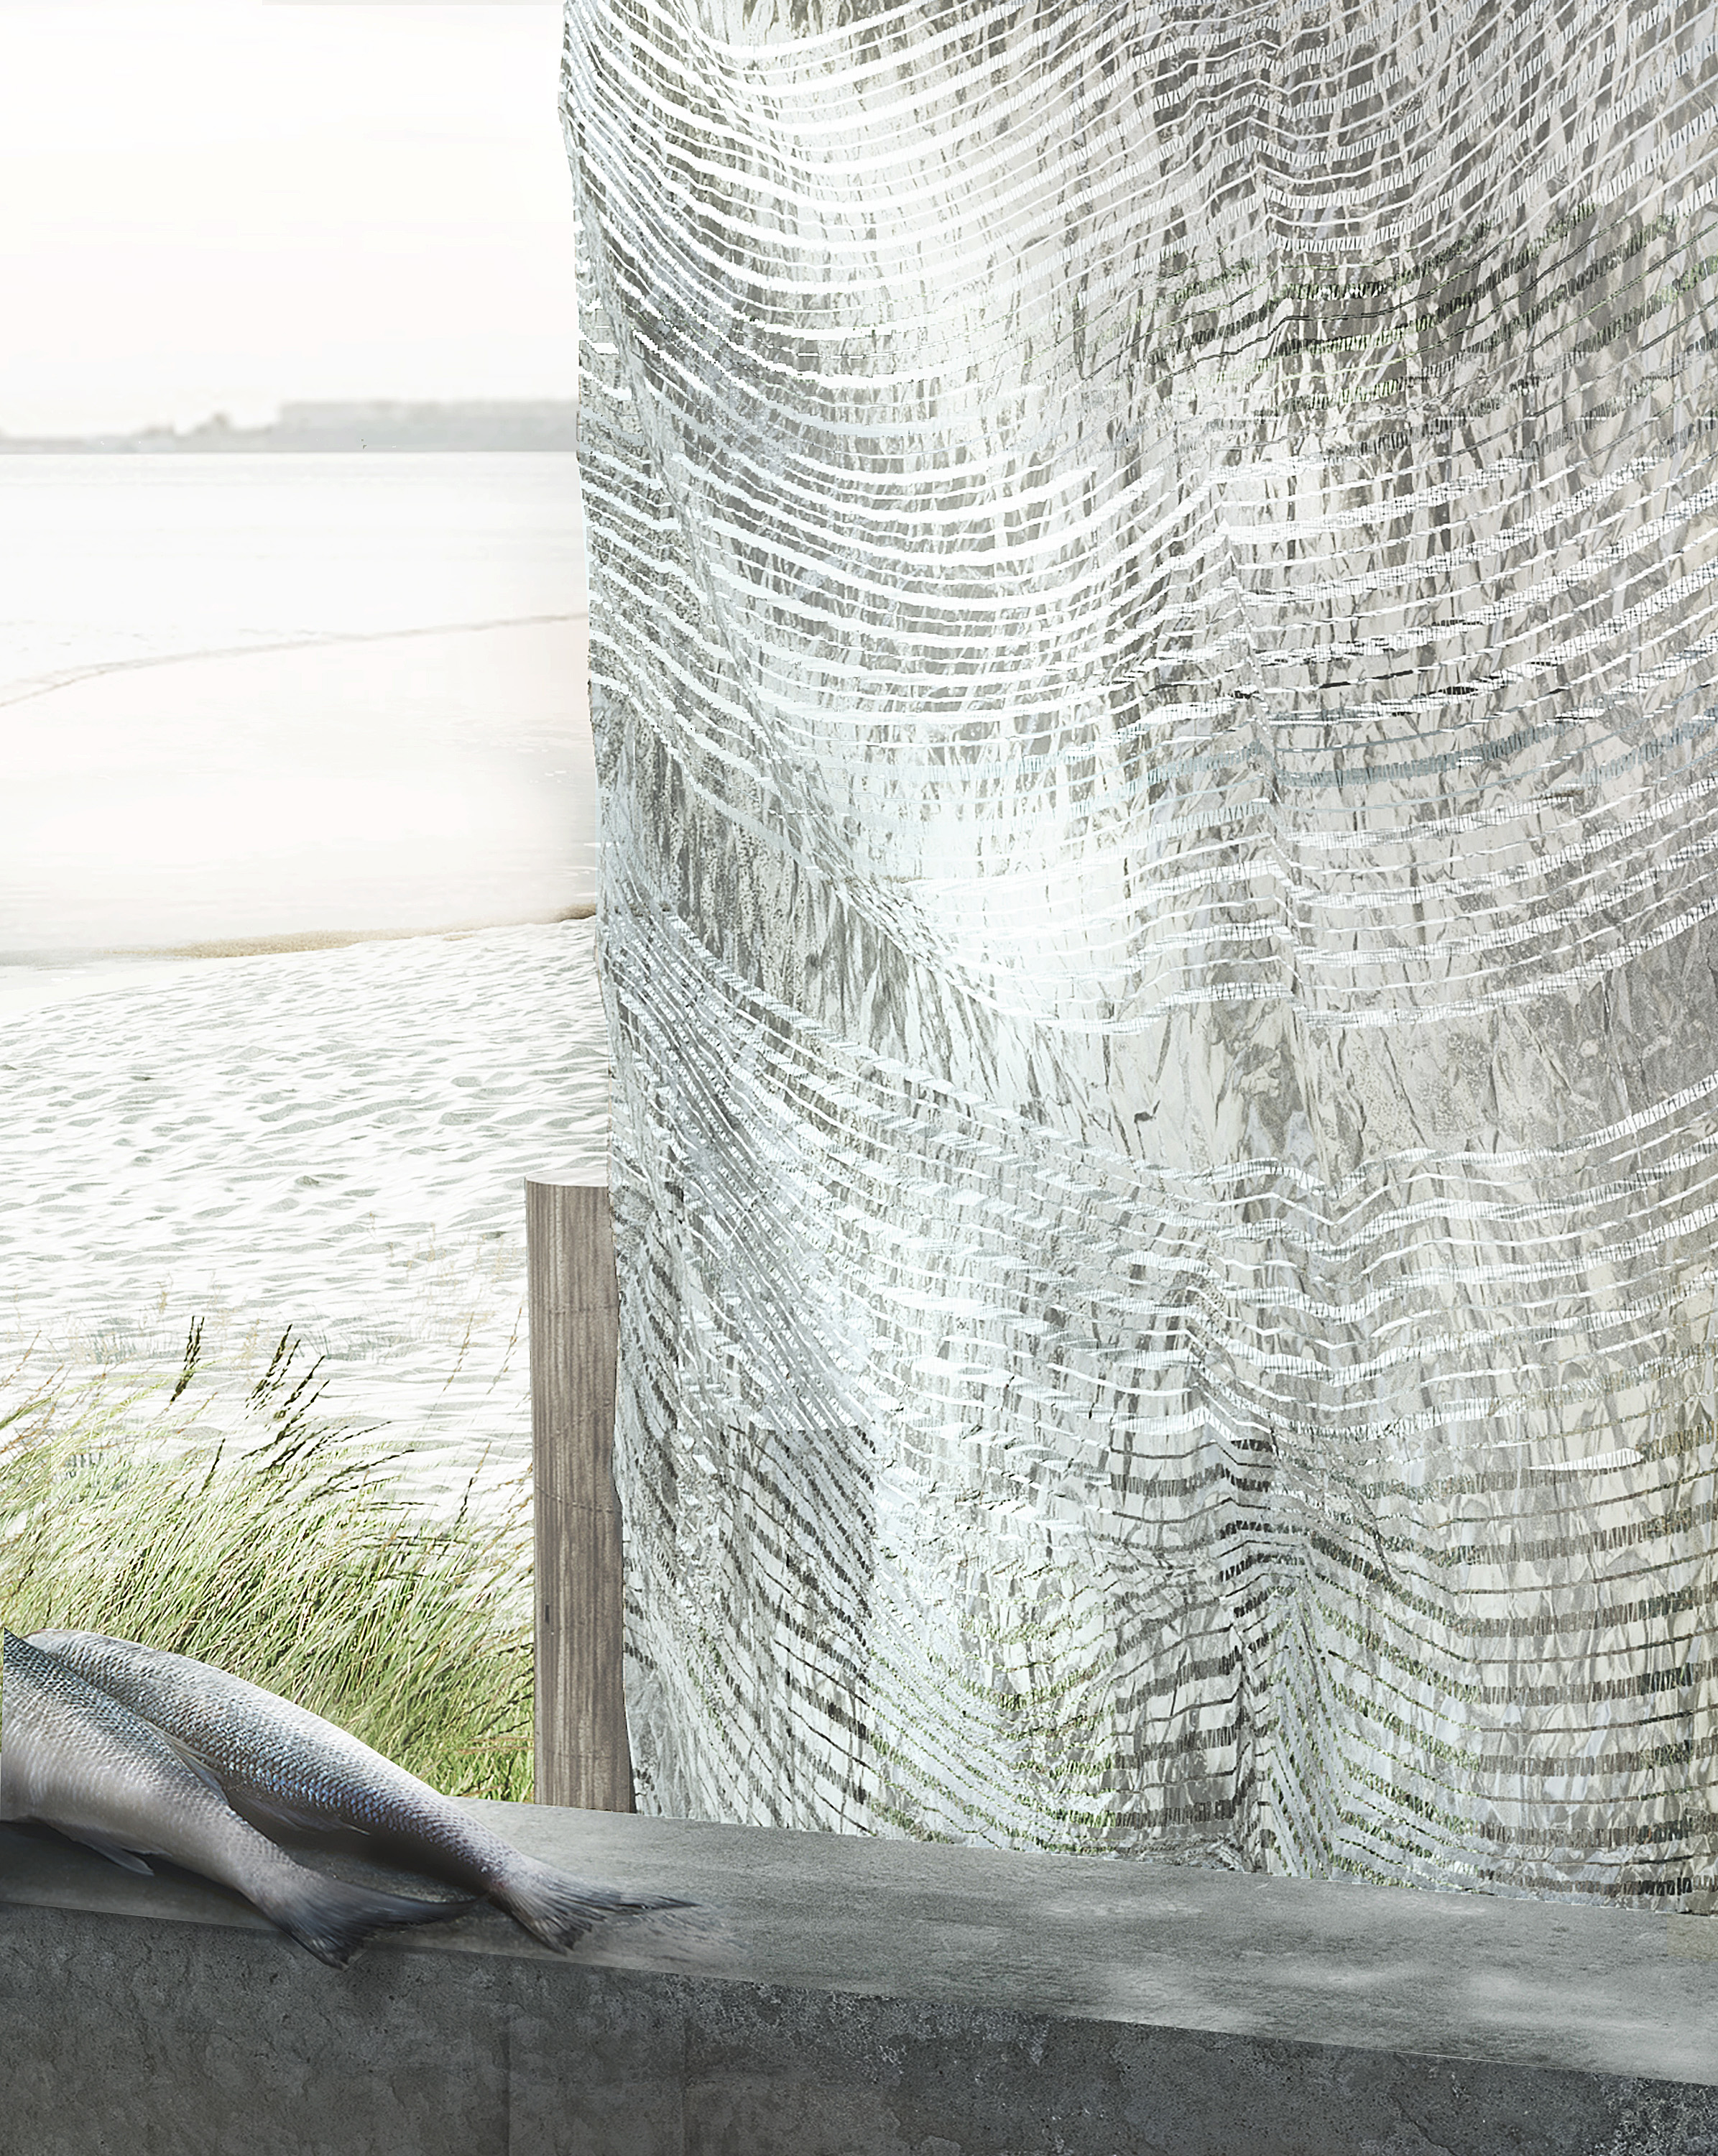 The design of the fish inspired textile is design in collaboration CITA, KADK and supported be the Dreyer Fondation